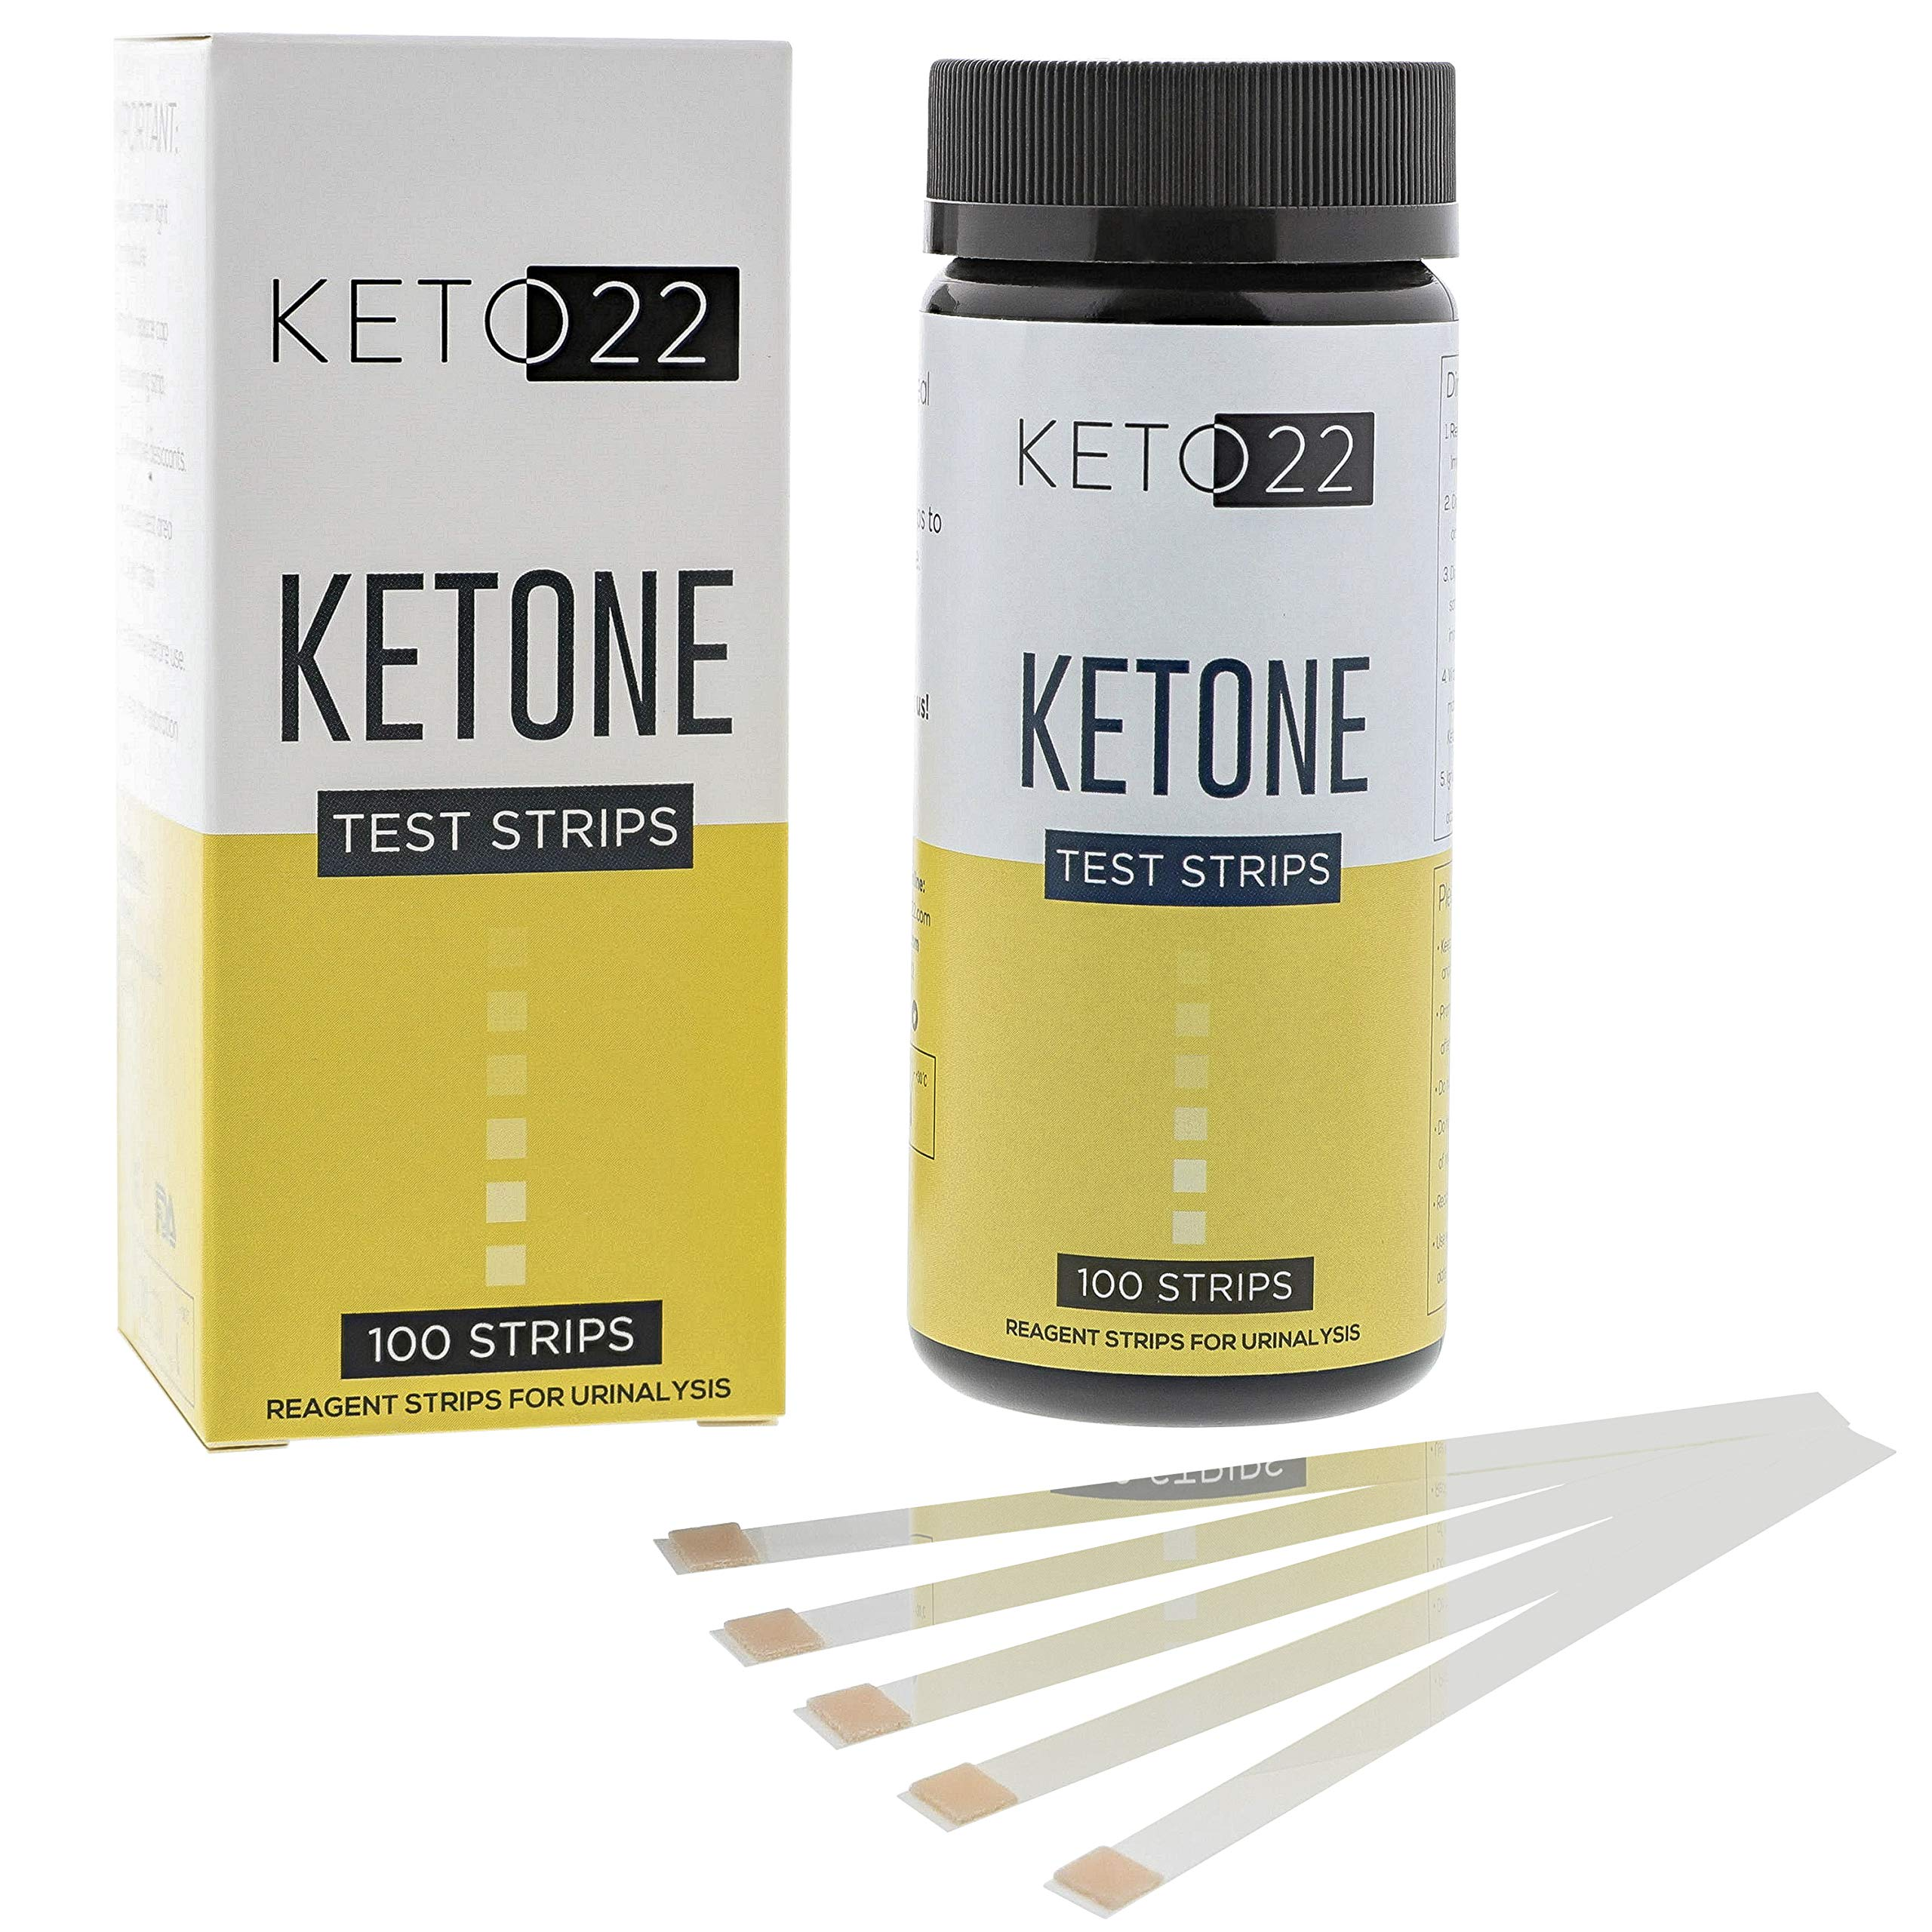 Keto 22 Ketosis Test Strips - 100 Keto Strips - Accurate Ketone Test Strips - Monitor and Maintain a Low Carb Ketogenic Diet with Keto Test Strips. Stay in Ketosis. Lose Weight, Feel Great.